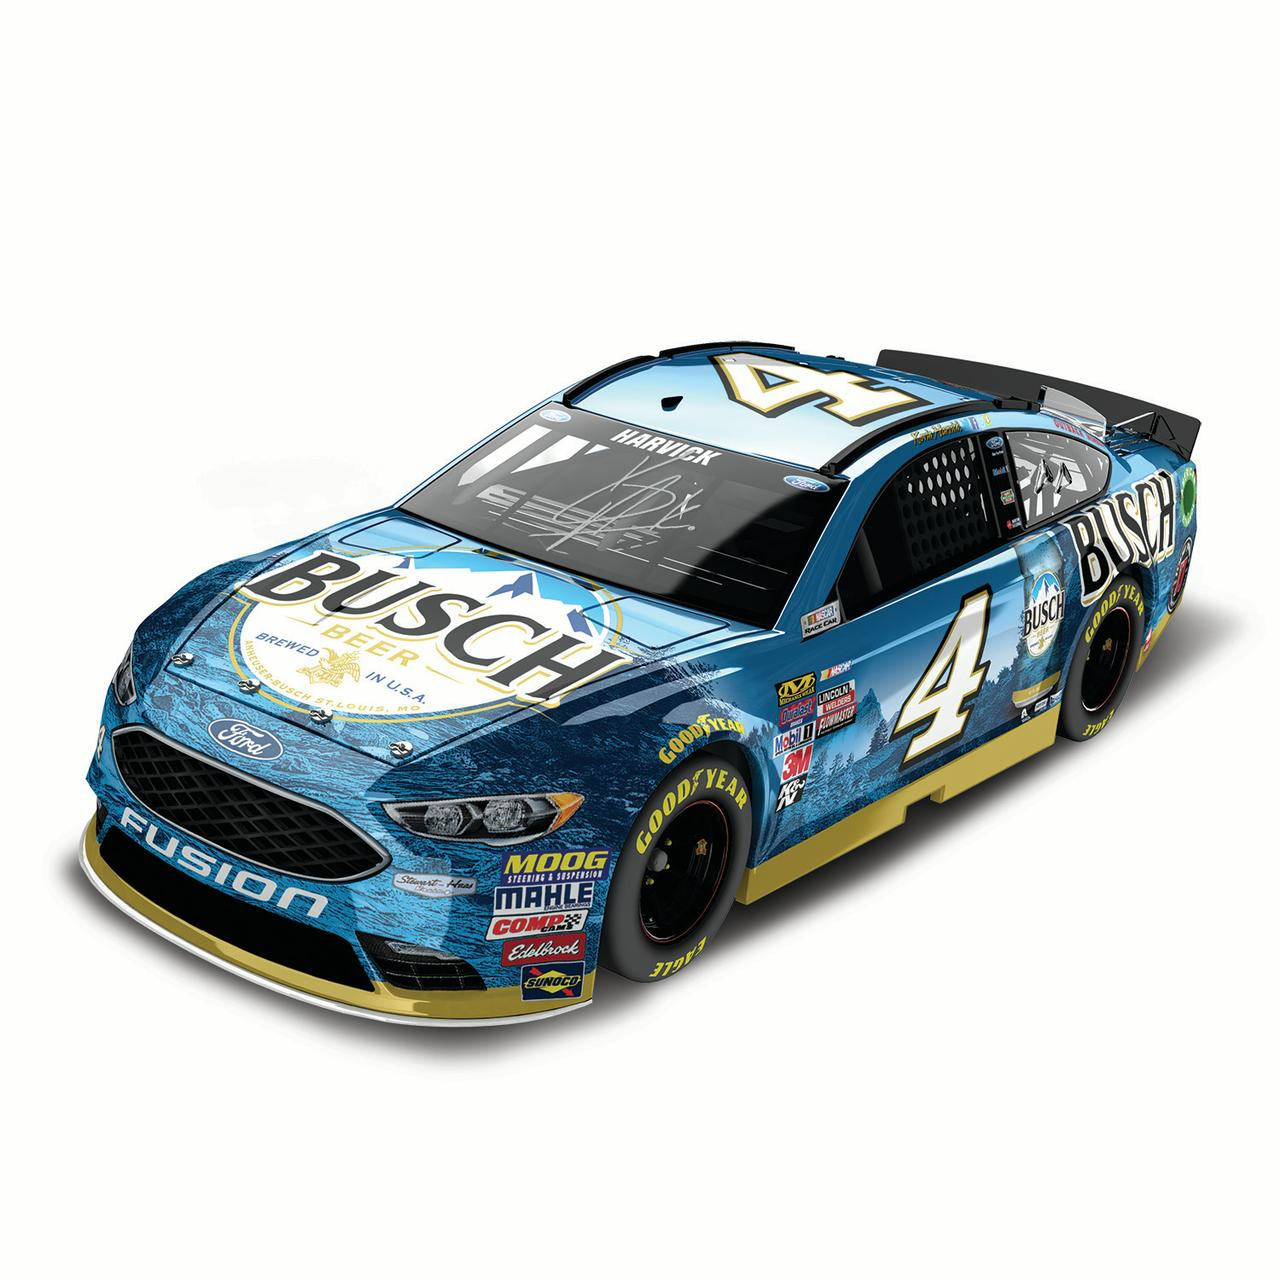 Kevin Harvick Action Racing 2017 #4 Busch 1:24 Monster Energy Nascar Cup Series... by Lionel LLC